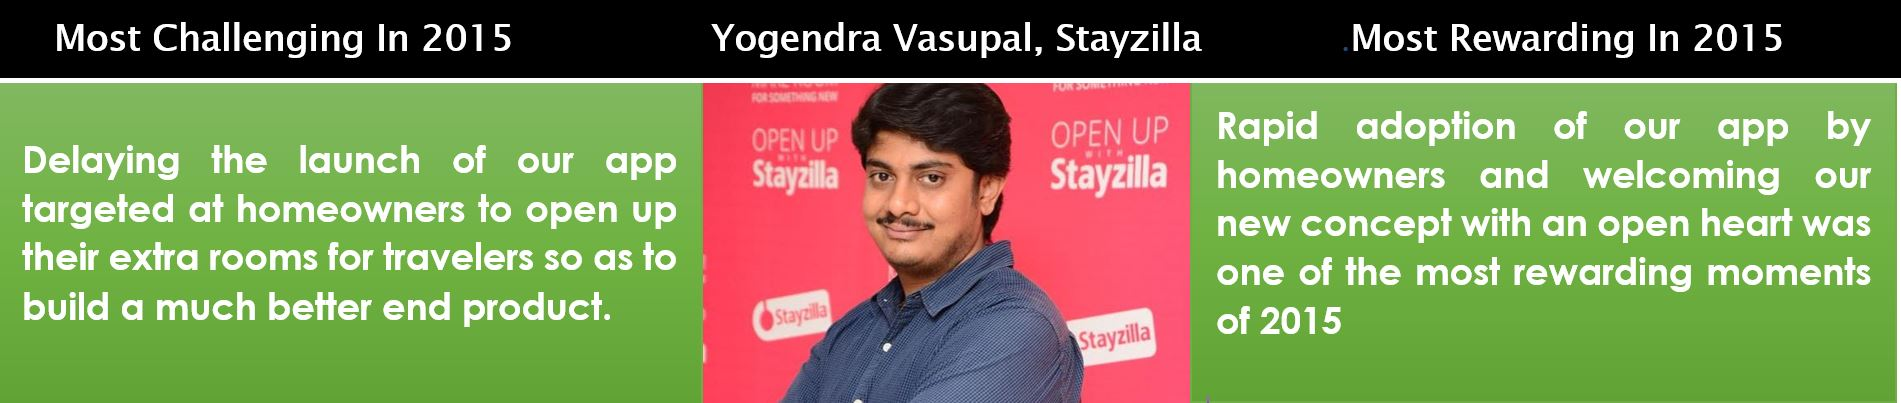 Yogendra-final